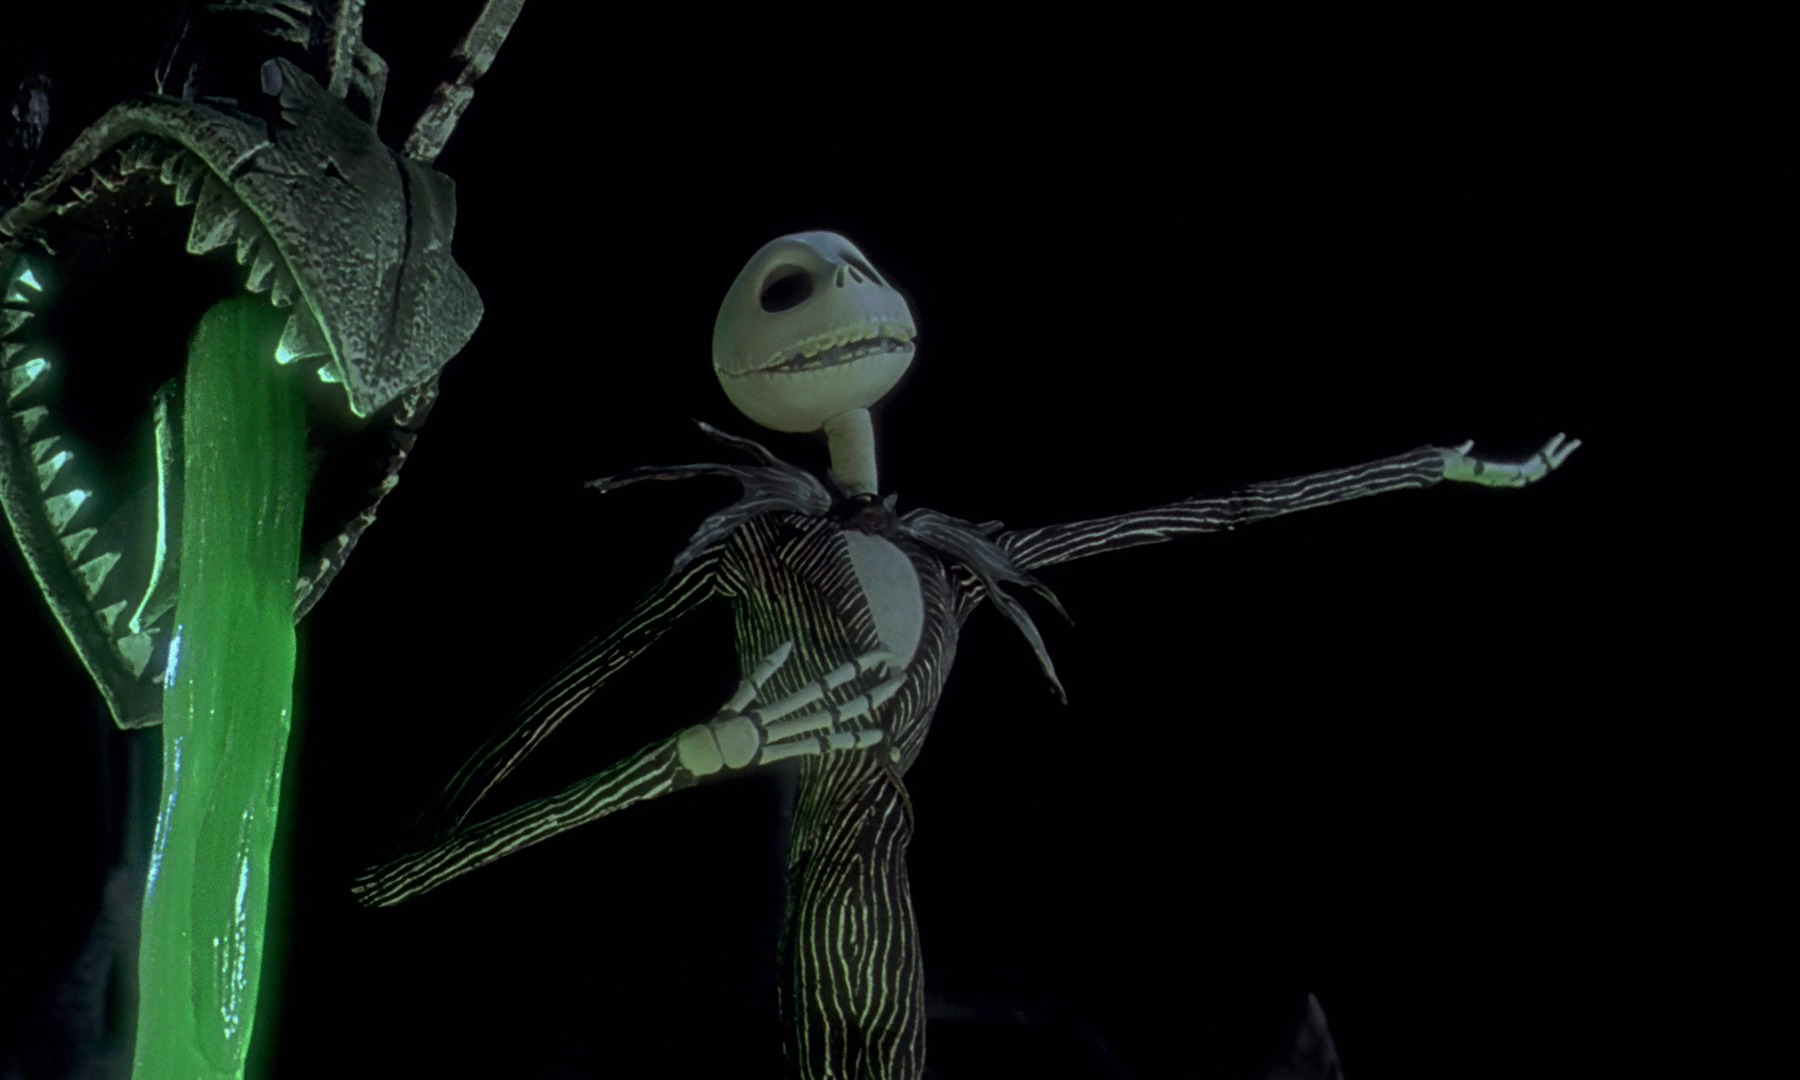 How Many Fun Facts Do You Know About The Nightmare Before Christmas?